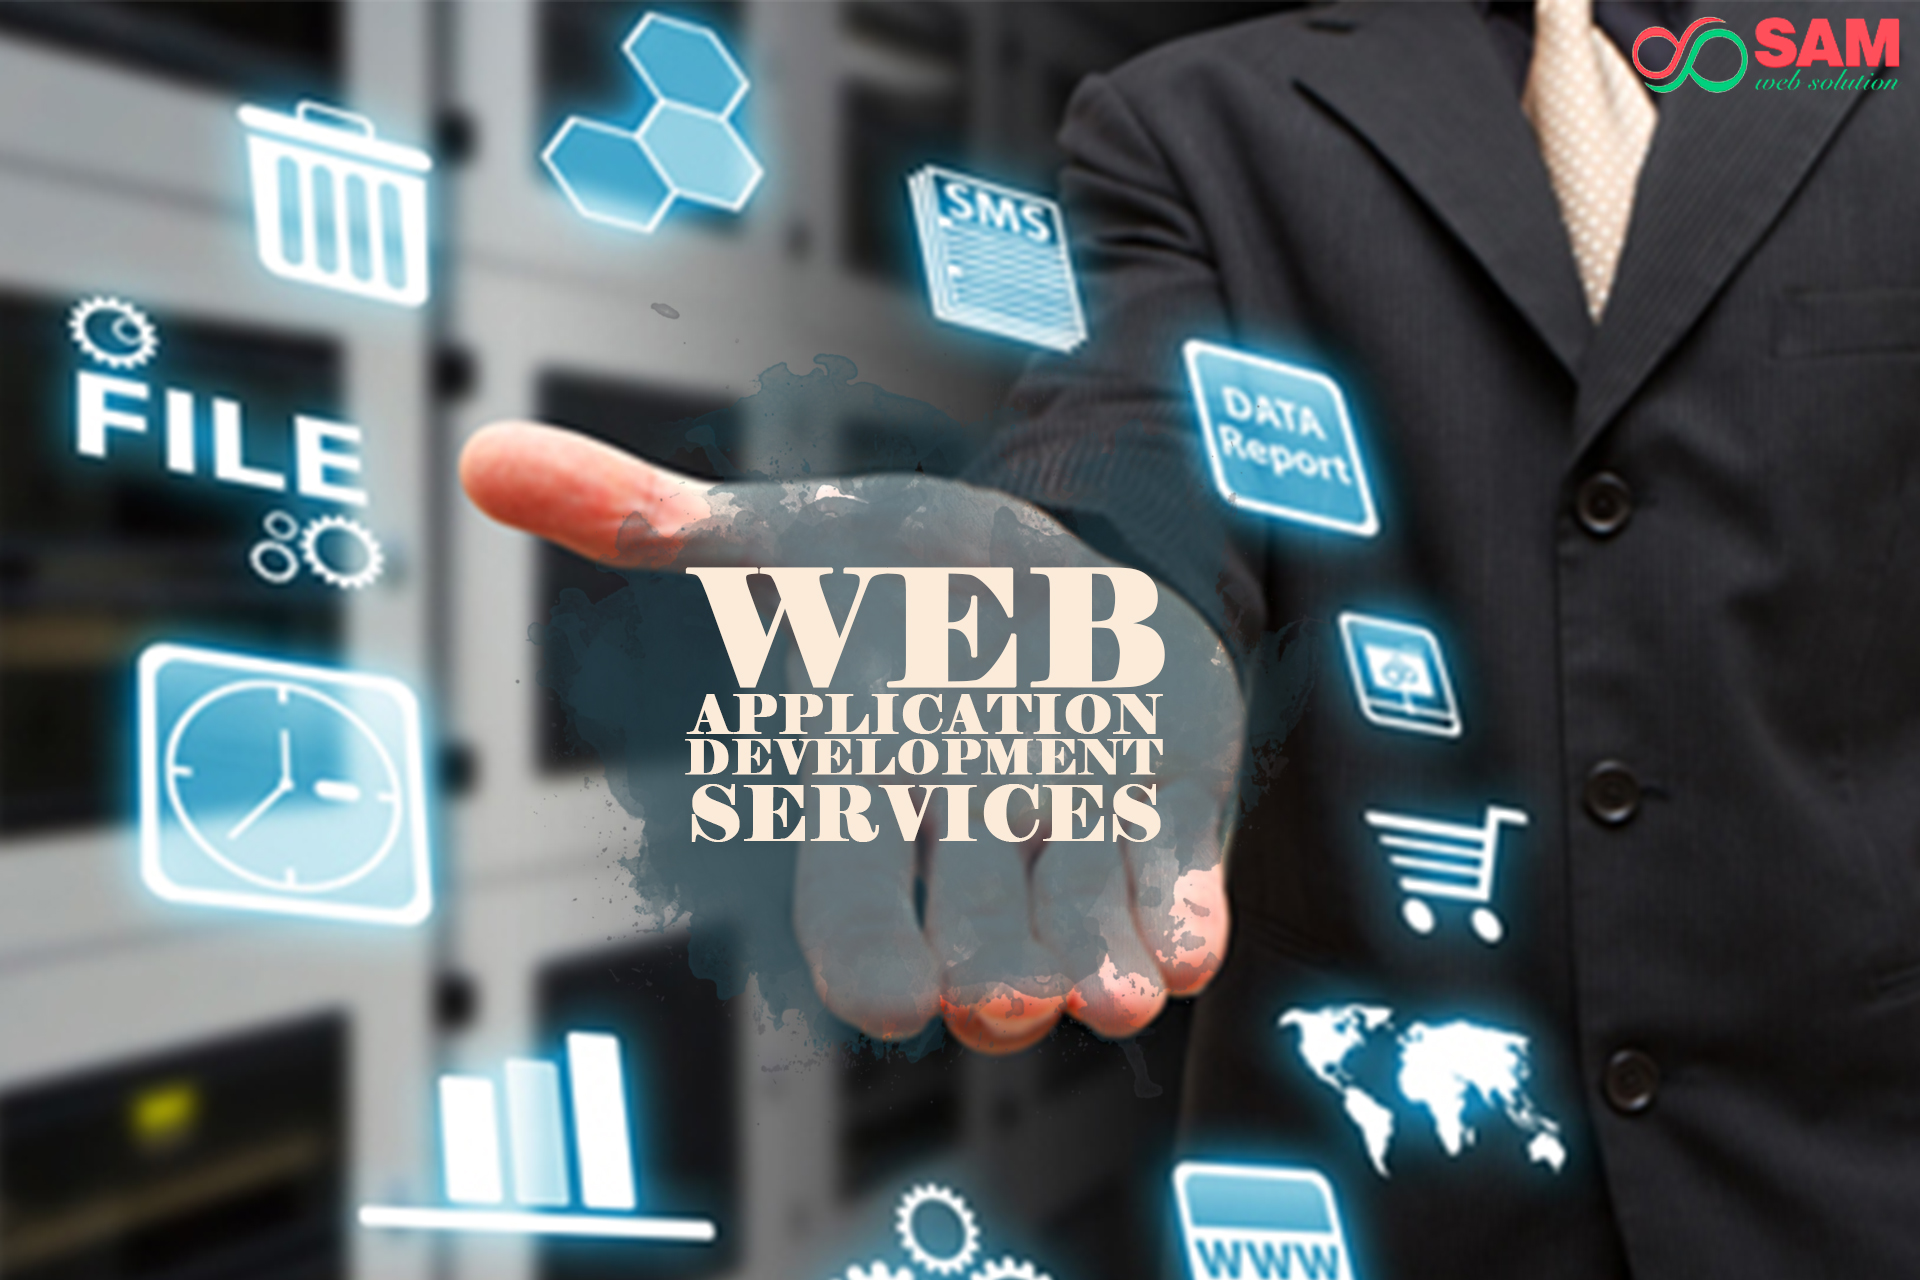 | Web Application Development Services